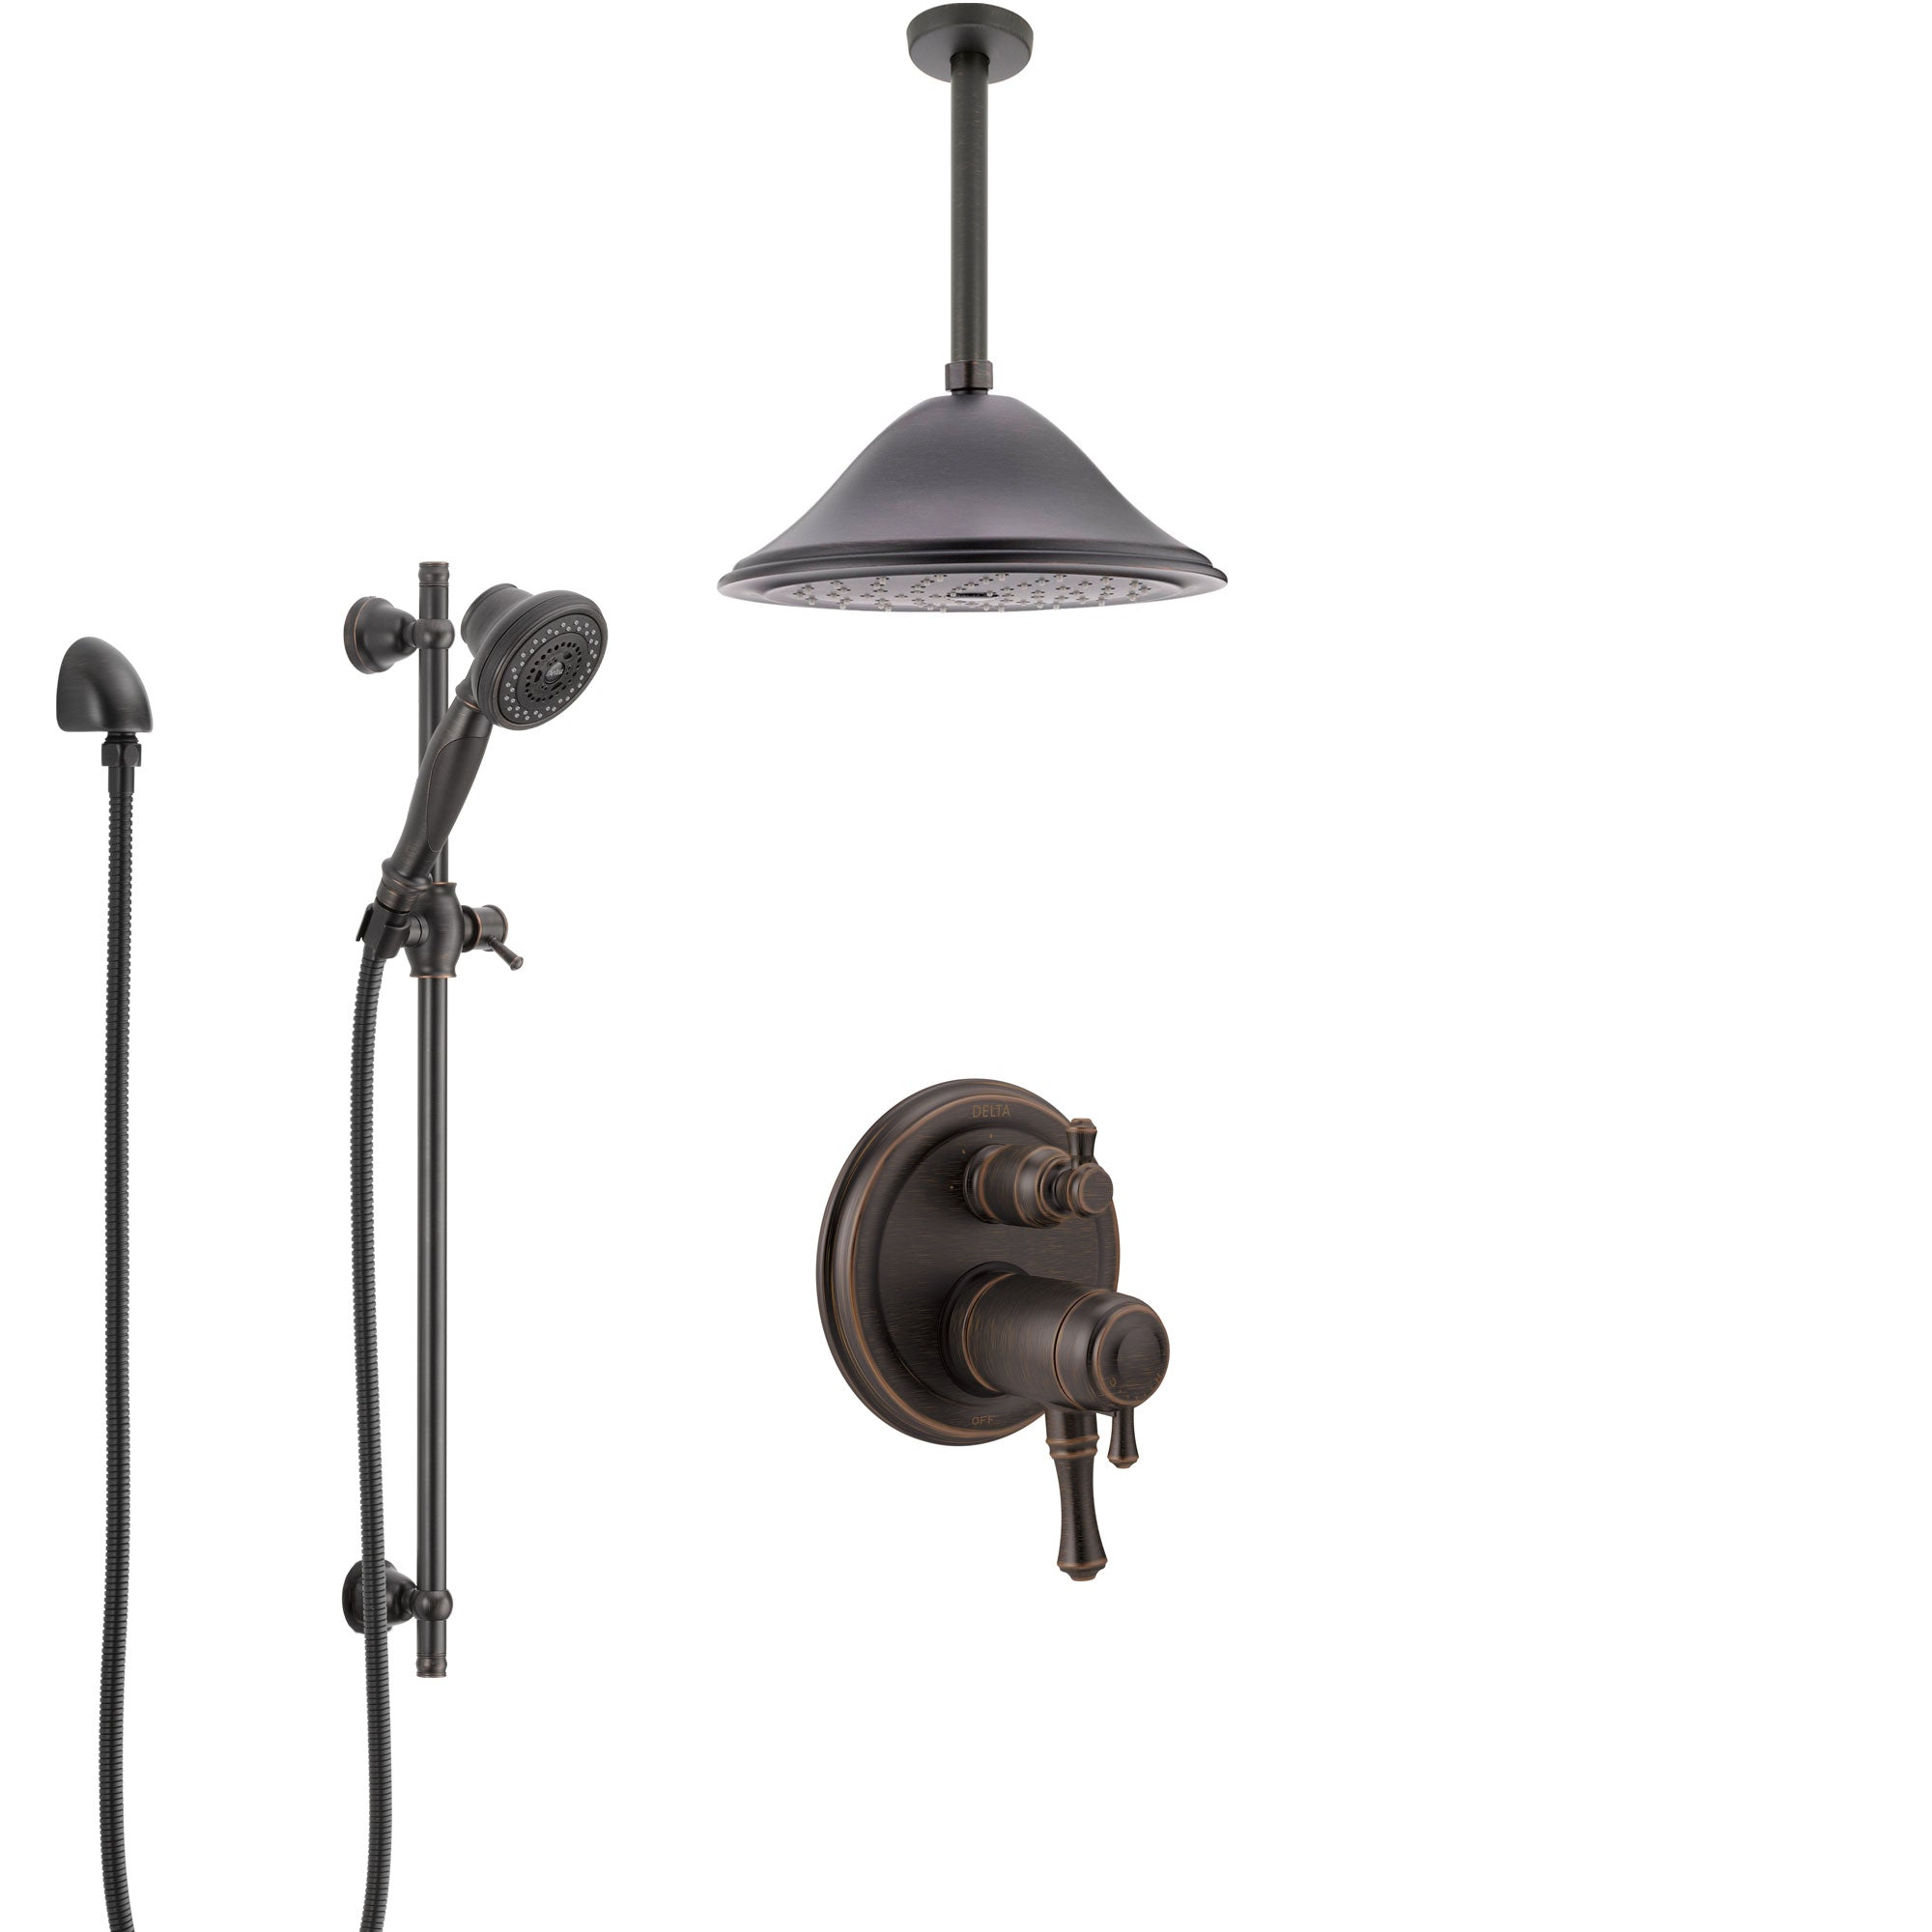 Delta Cassidy Venetian Bronze Integrated Diverter Shower System with Dual Thermostatic Control, Ceiling Mount Showerhead, and Hand Shower SS27T897RB3